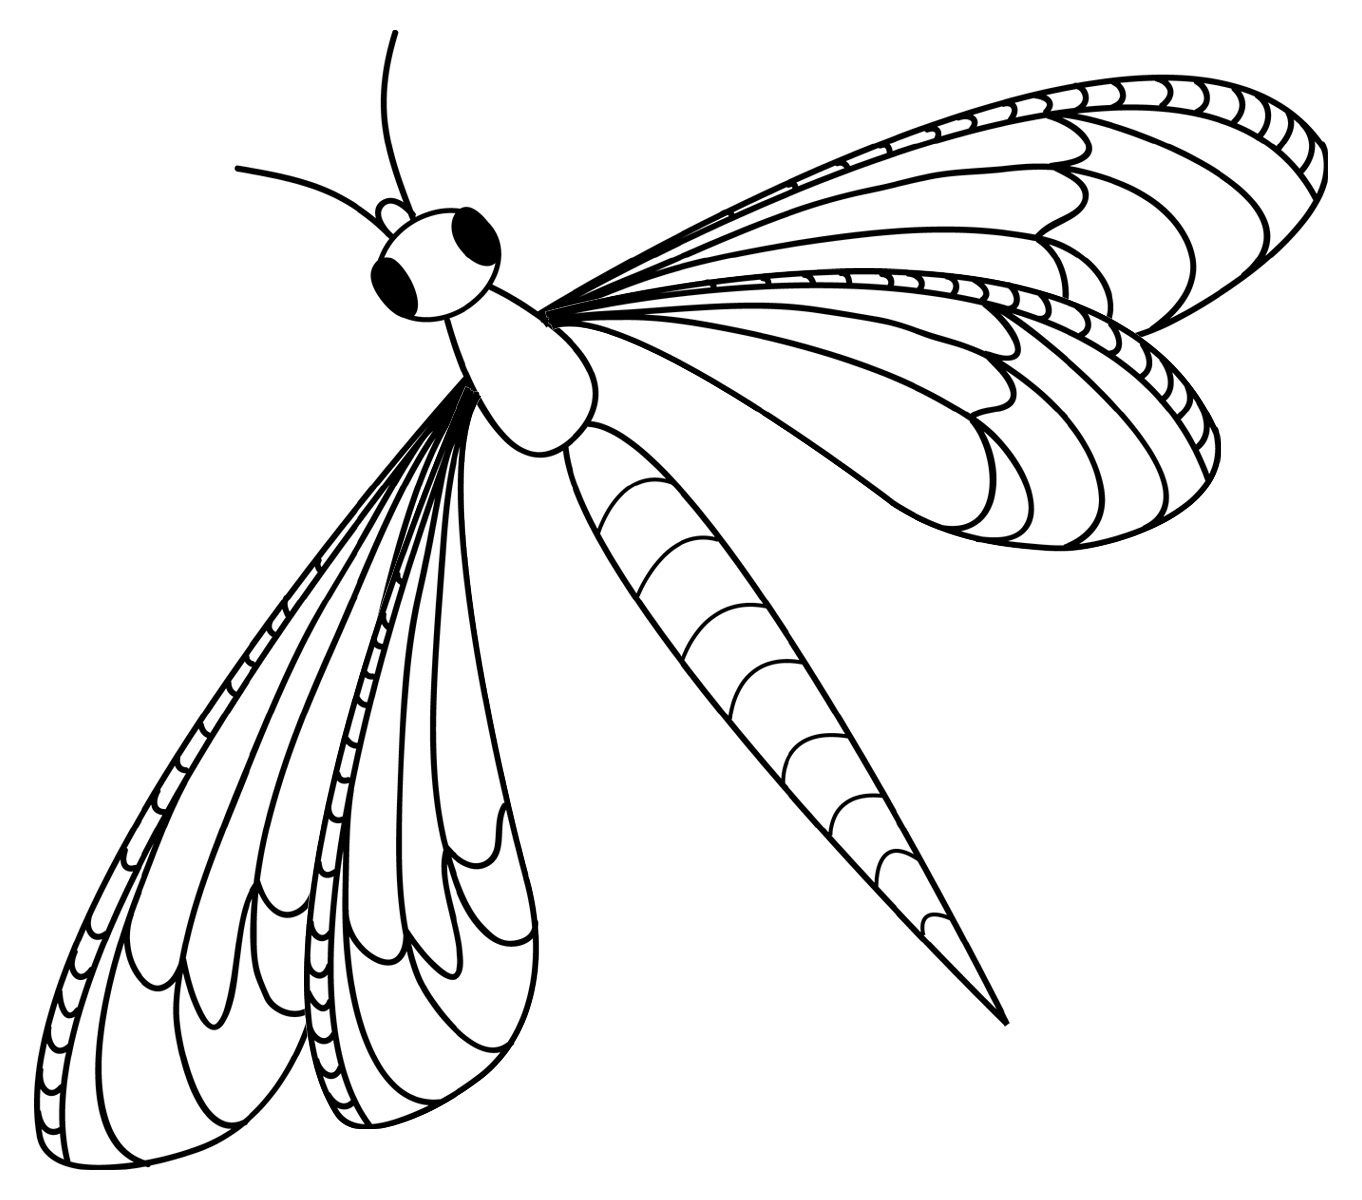 Dragonfly coloring #19, Download drawings